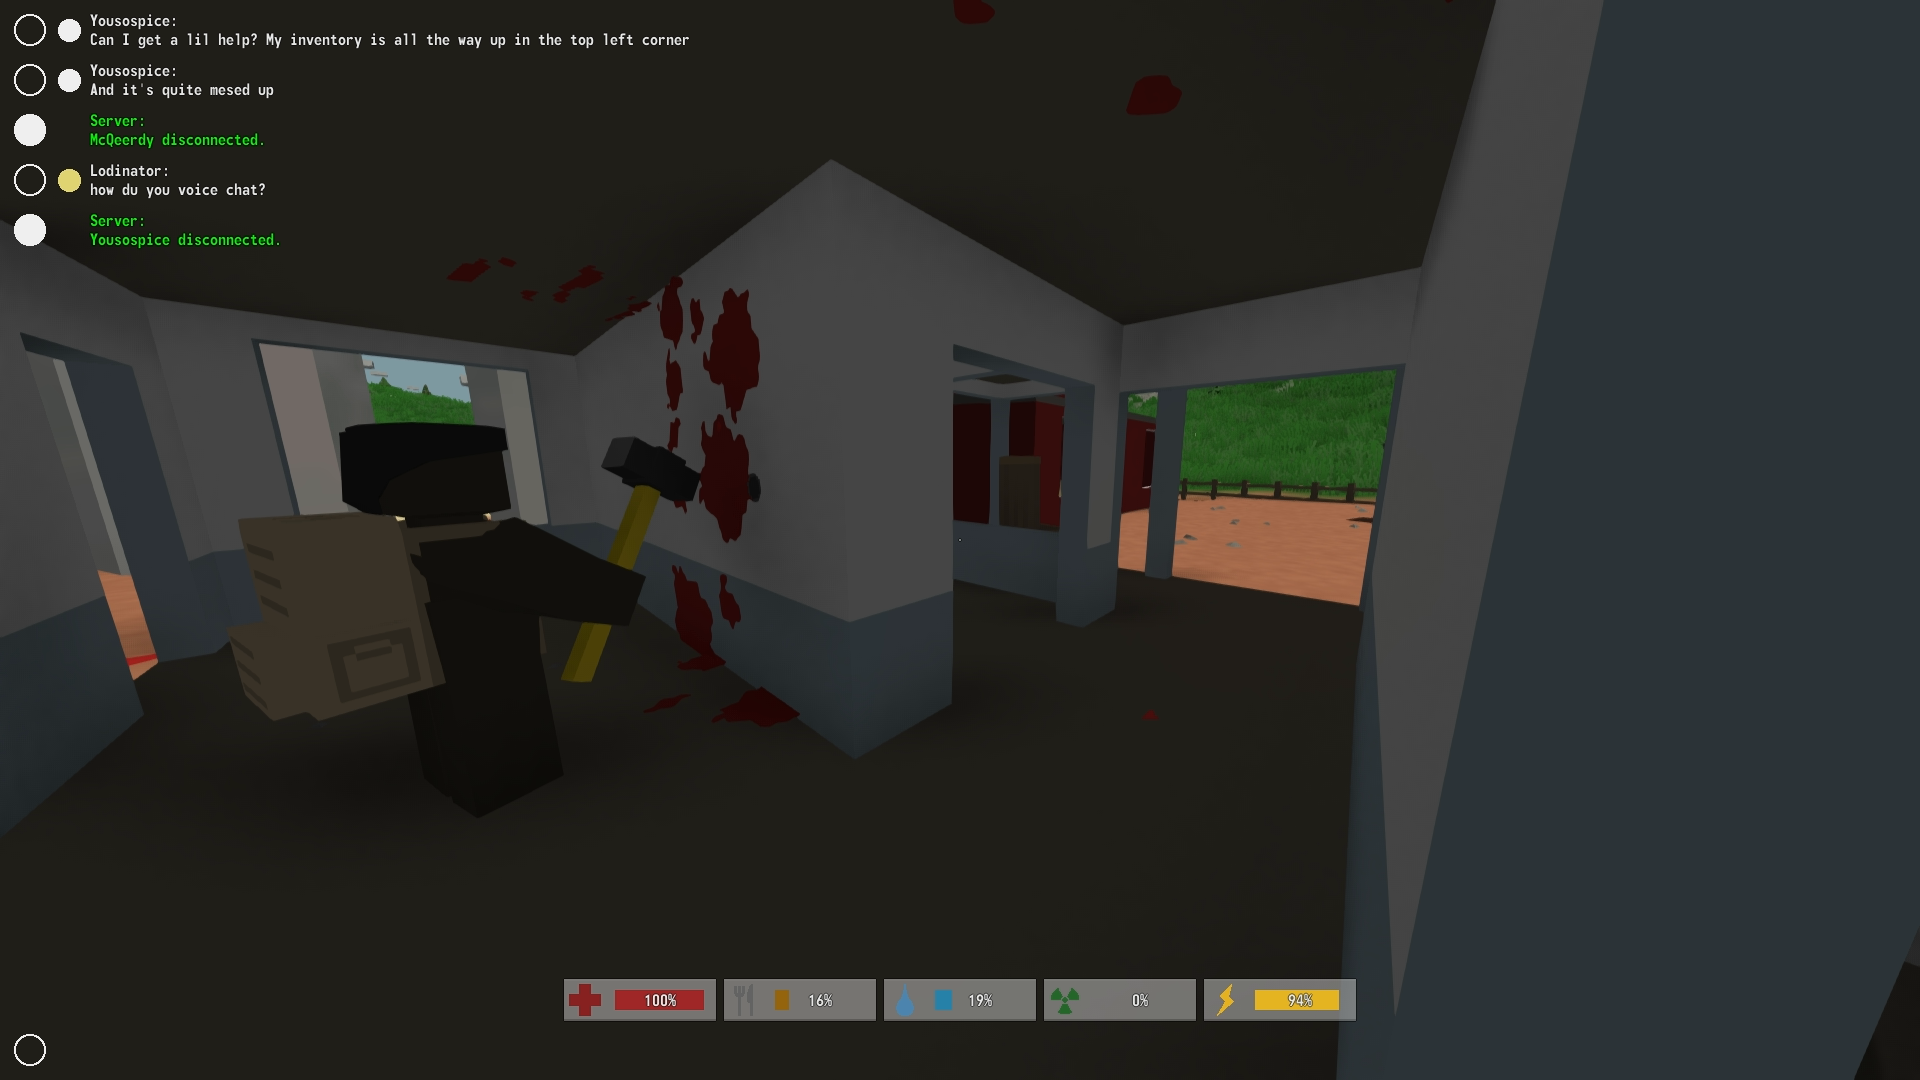 How to chat in unturned - The Scene Of The Crime In The New Unturned Zombie Survival Game That S Free To Play On Steam Unturned Check Out My First Unturned Encounter Here